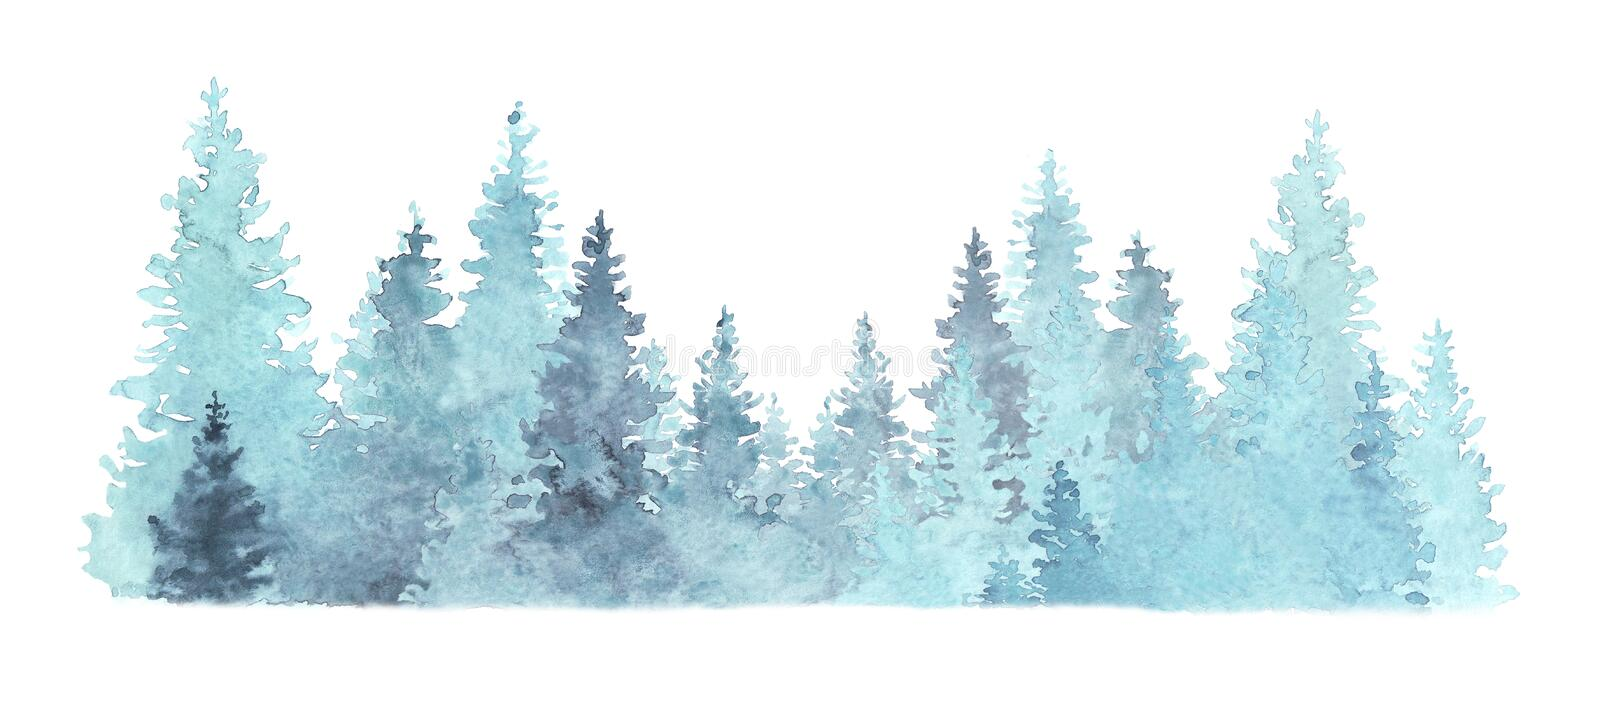 Beautiful watercolor coniferous forest illustration, Christmas fir trees, winter nature, holiday background, conifer, snow, outdoo stock illustration